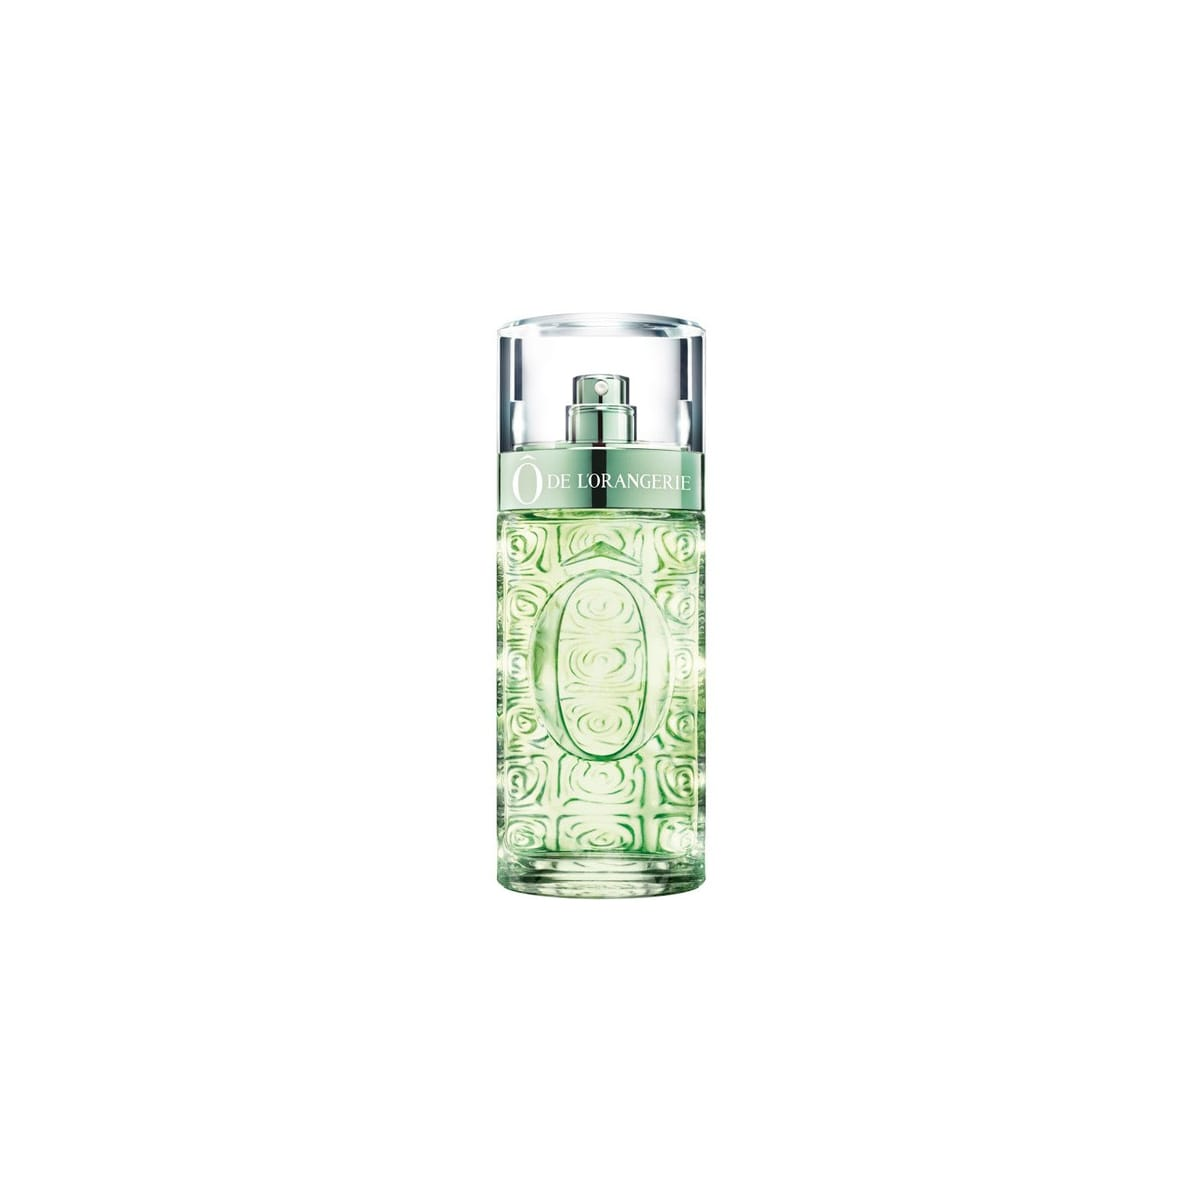 O De L'Orangerie Eau de Toilette Spray for Her, Perfumes and Fragrances for Women by Lancome. The orange blossom perfume with fruity-floral scent & hint of citrus. Fragrance perfume spray for /5(49).